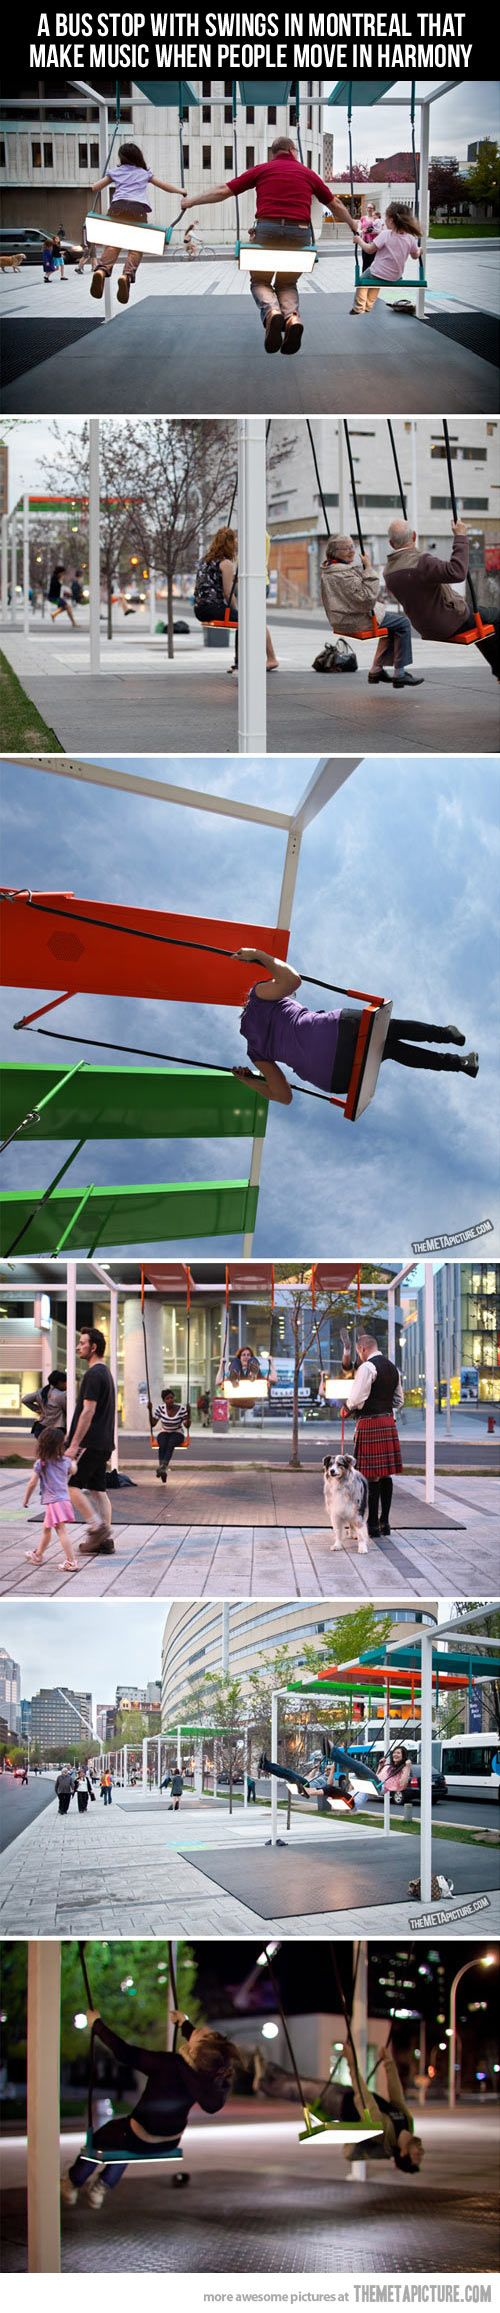 Interactive bus stop - swings that play music if played harmoniously